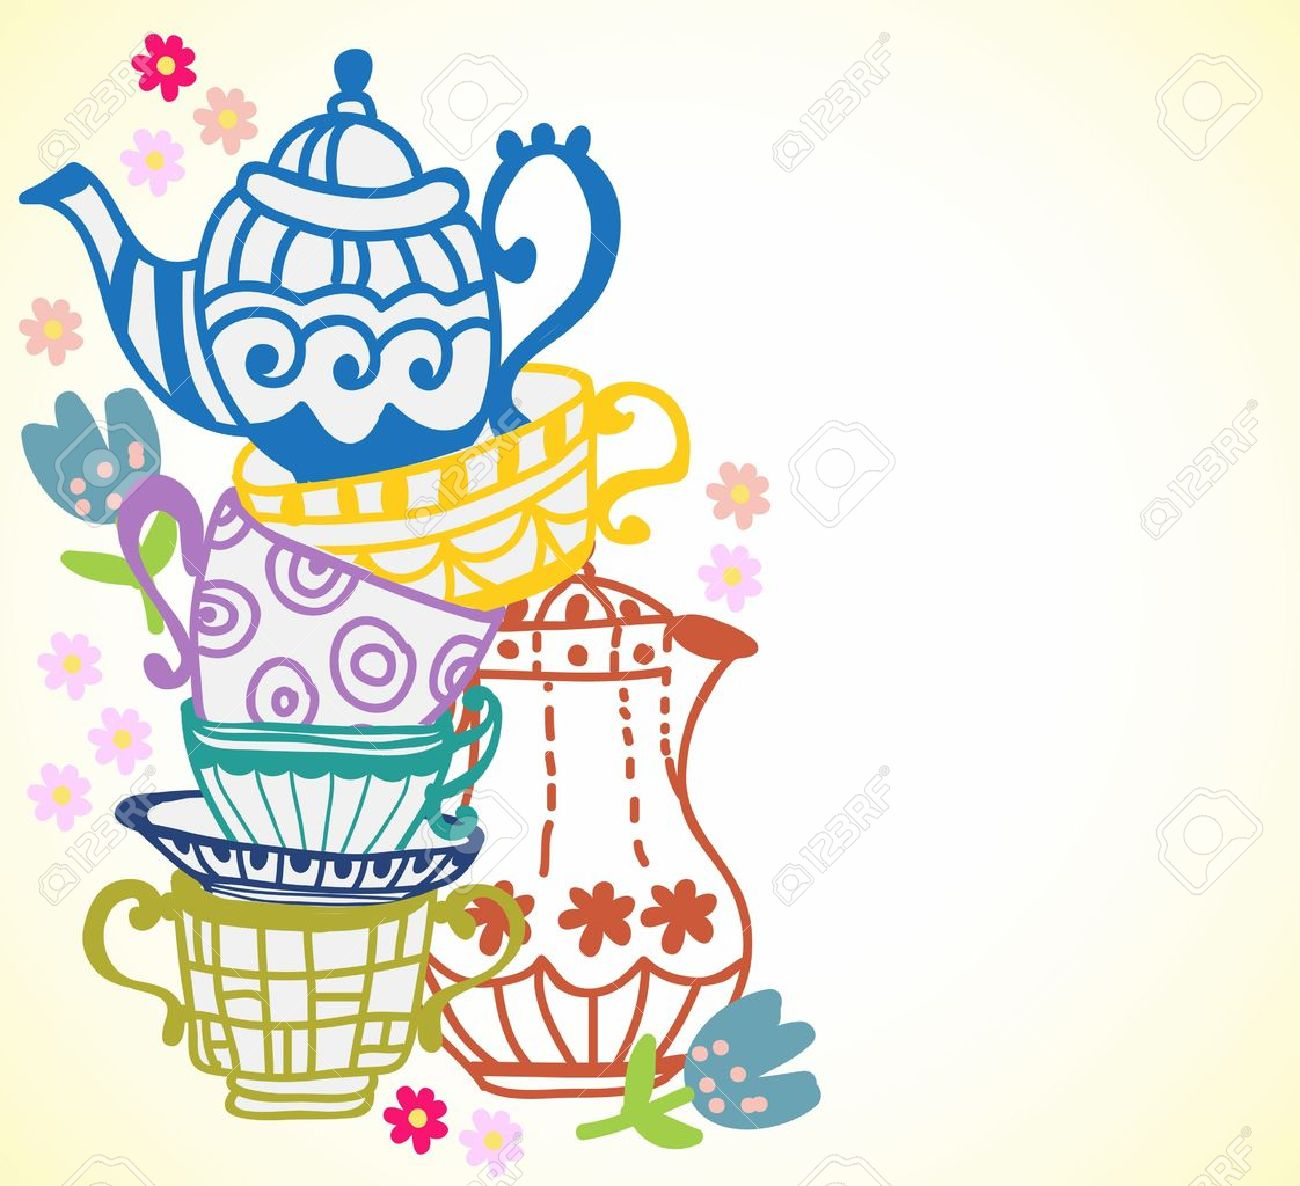 Elegant tea party invitation template with teacups cartoon vector - Tea Cup Background With Teapot Illustration For Design Stock Vector 18545928